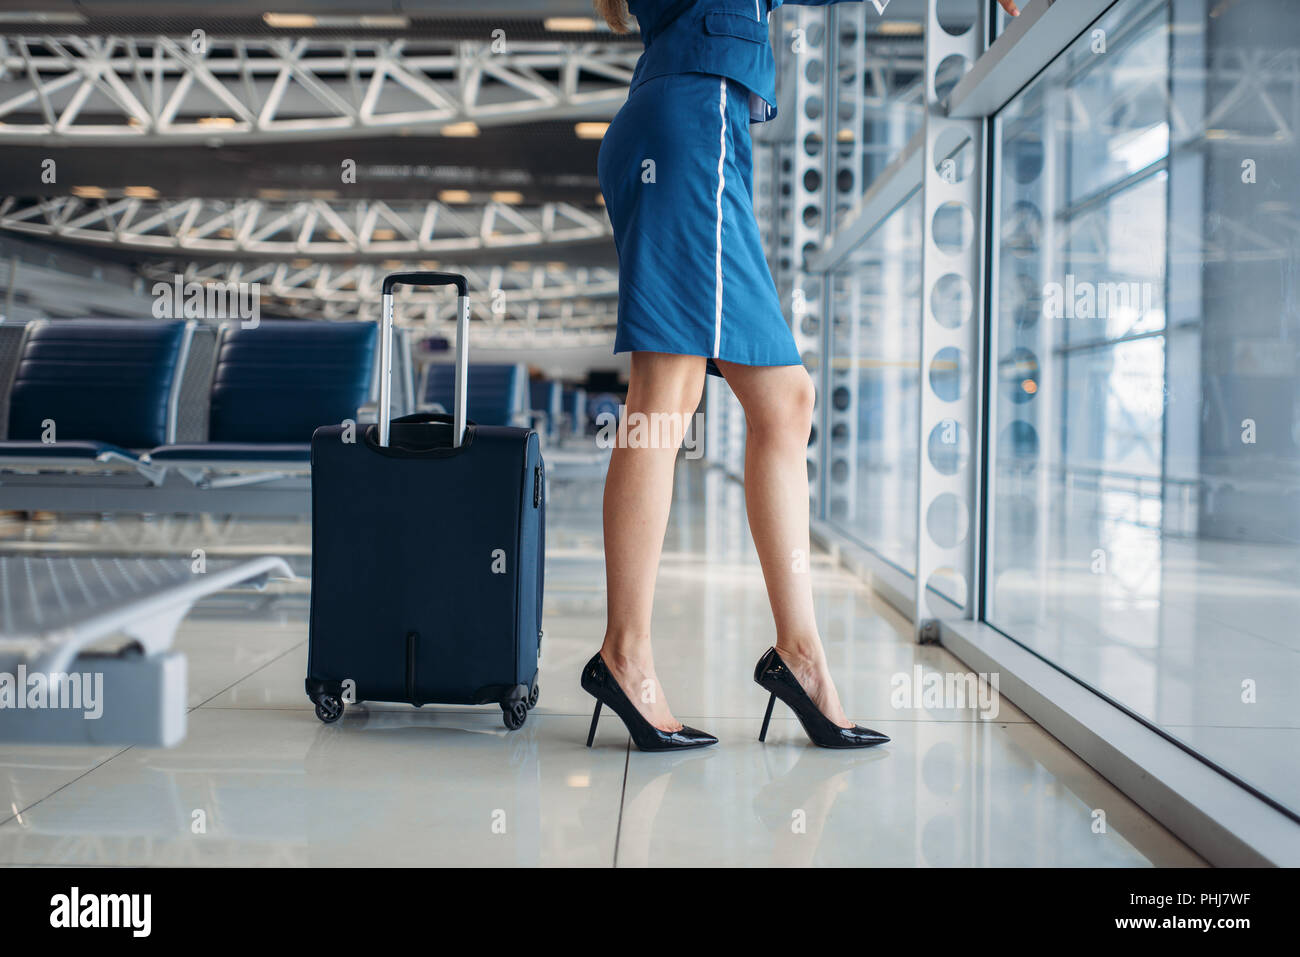 Slender stewardess and suitcase against window in airport hall. Air hostess with baggage in departure area, flight attendant with hand luggage, aviatr - Stock Image